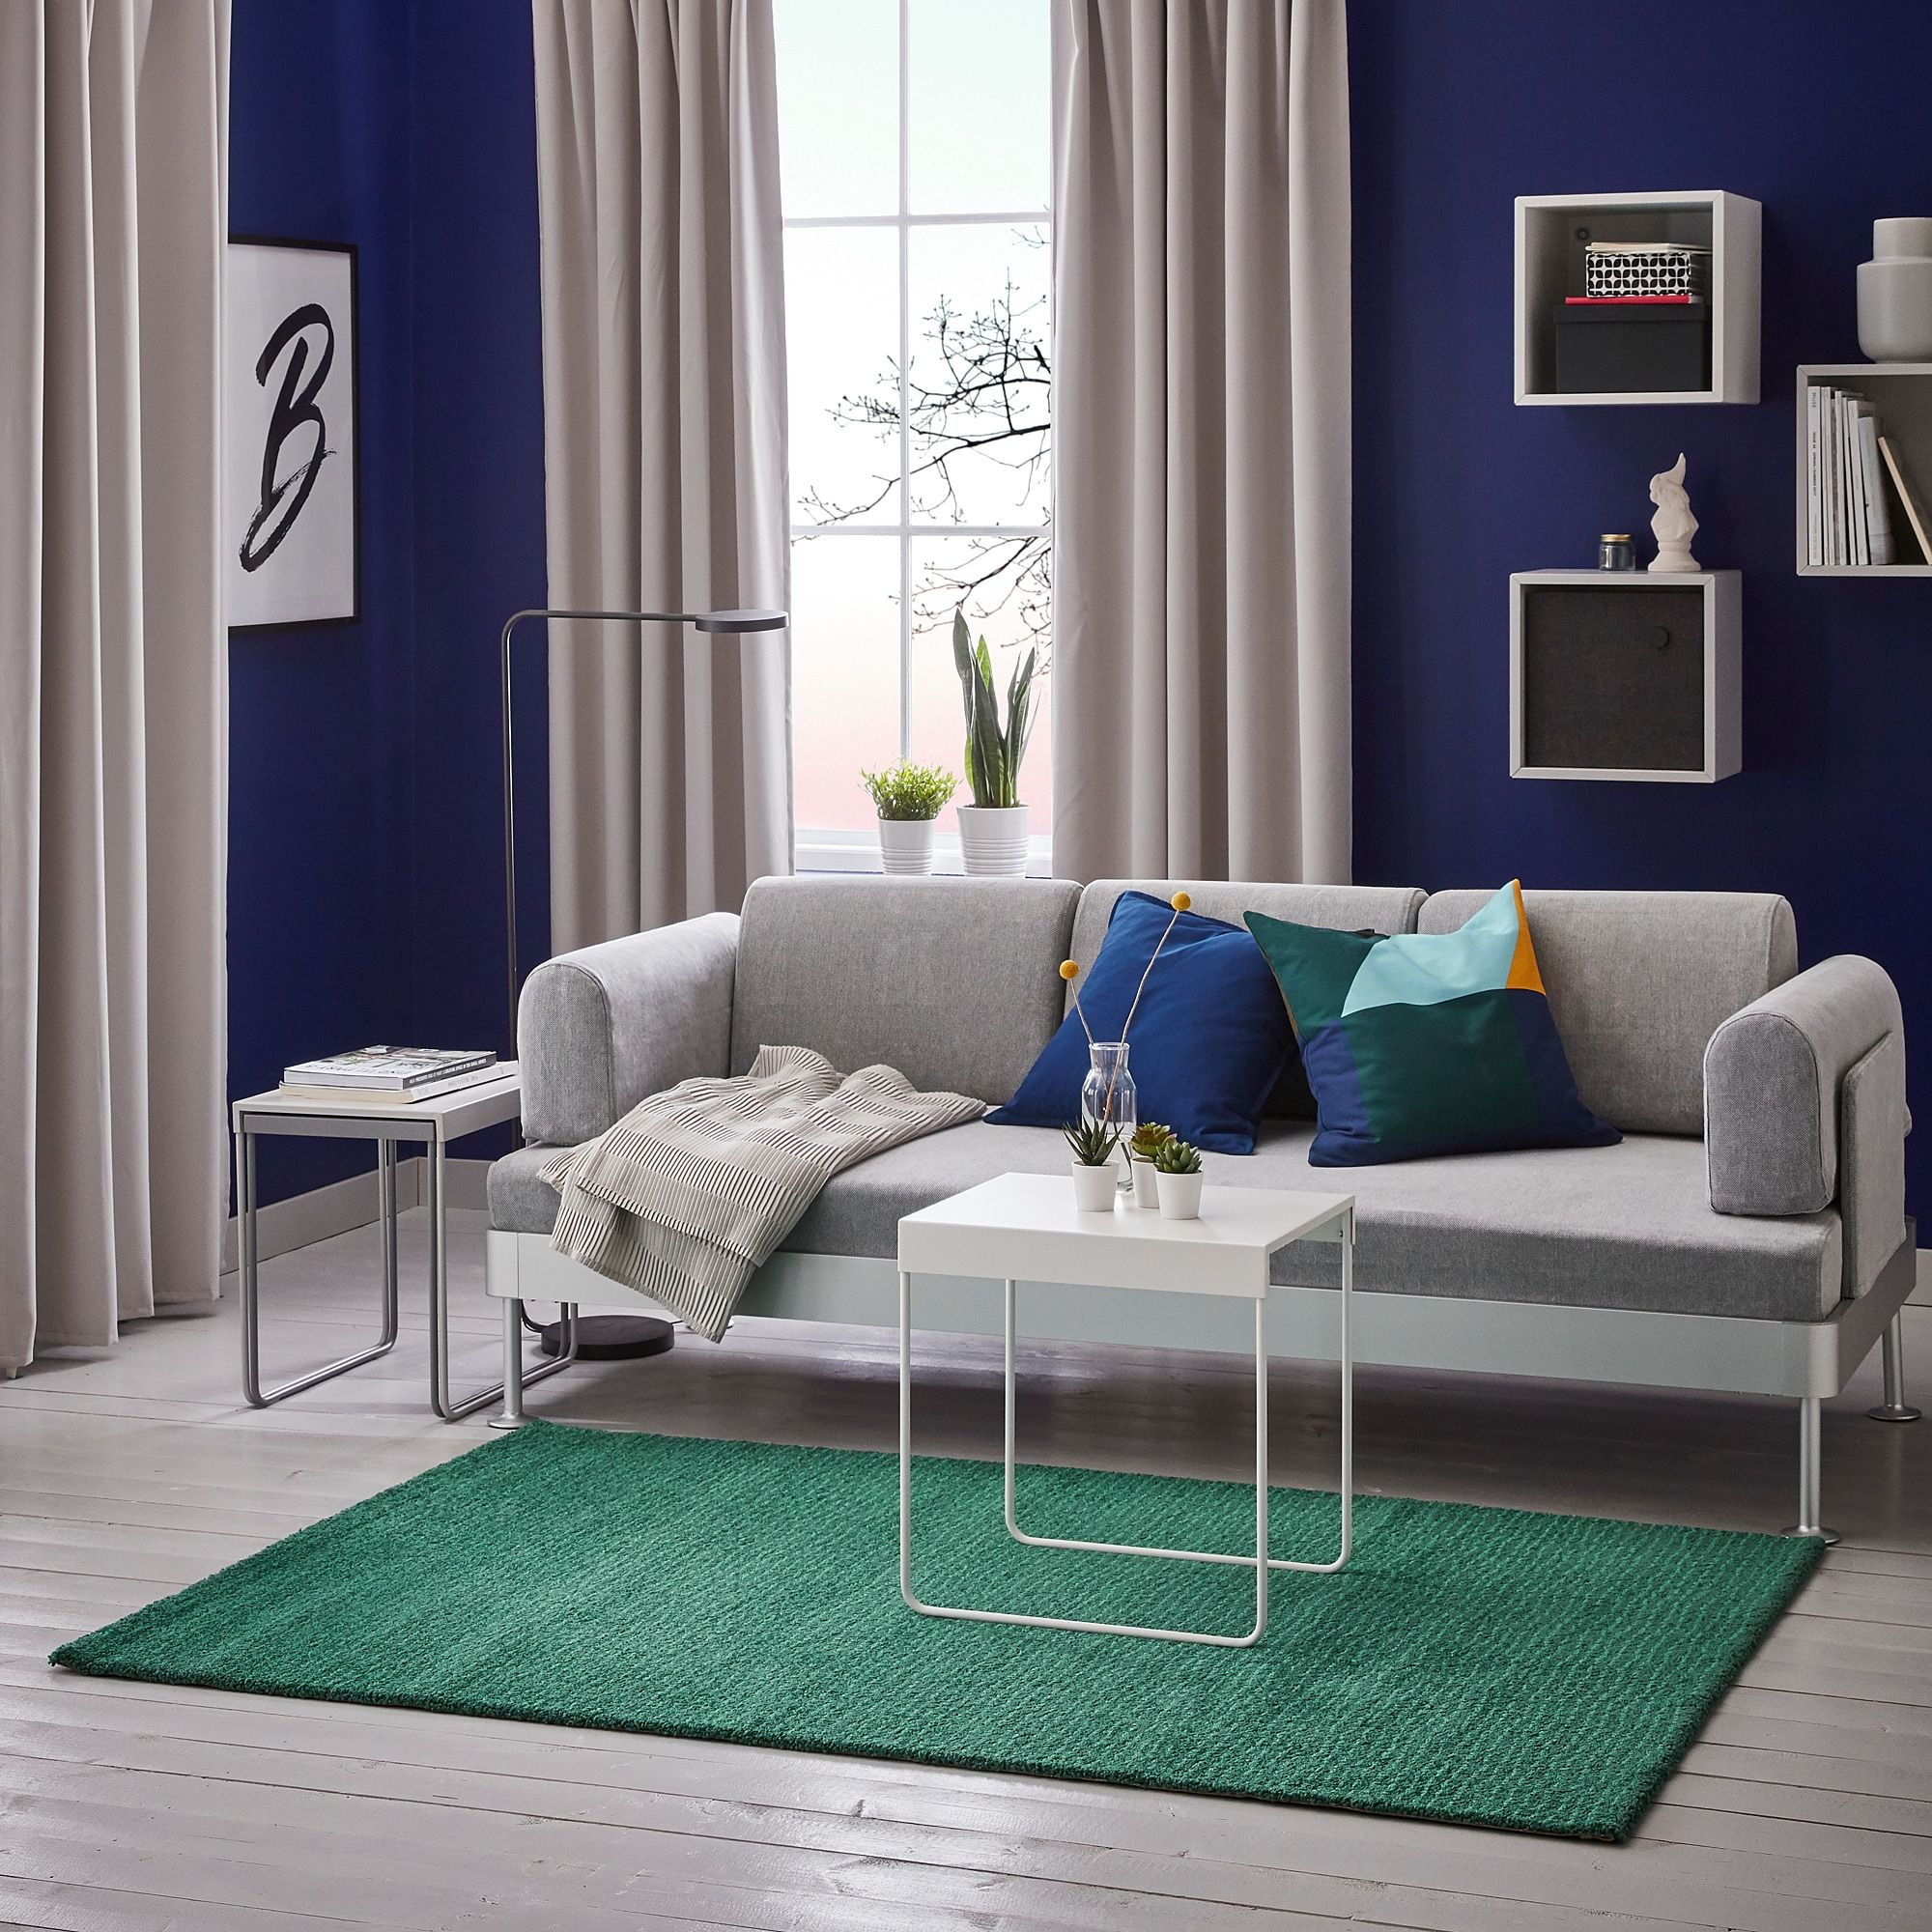 Ikea Langsted Rug Low Pile Green Ikea Ikea Furniture How To Clean Carpet [ 2000 x 2000 Pixel ]